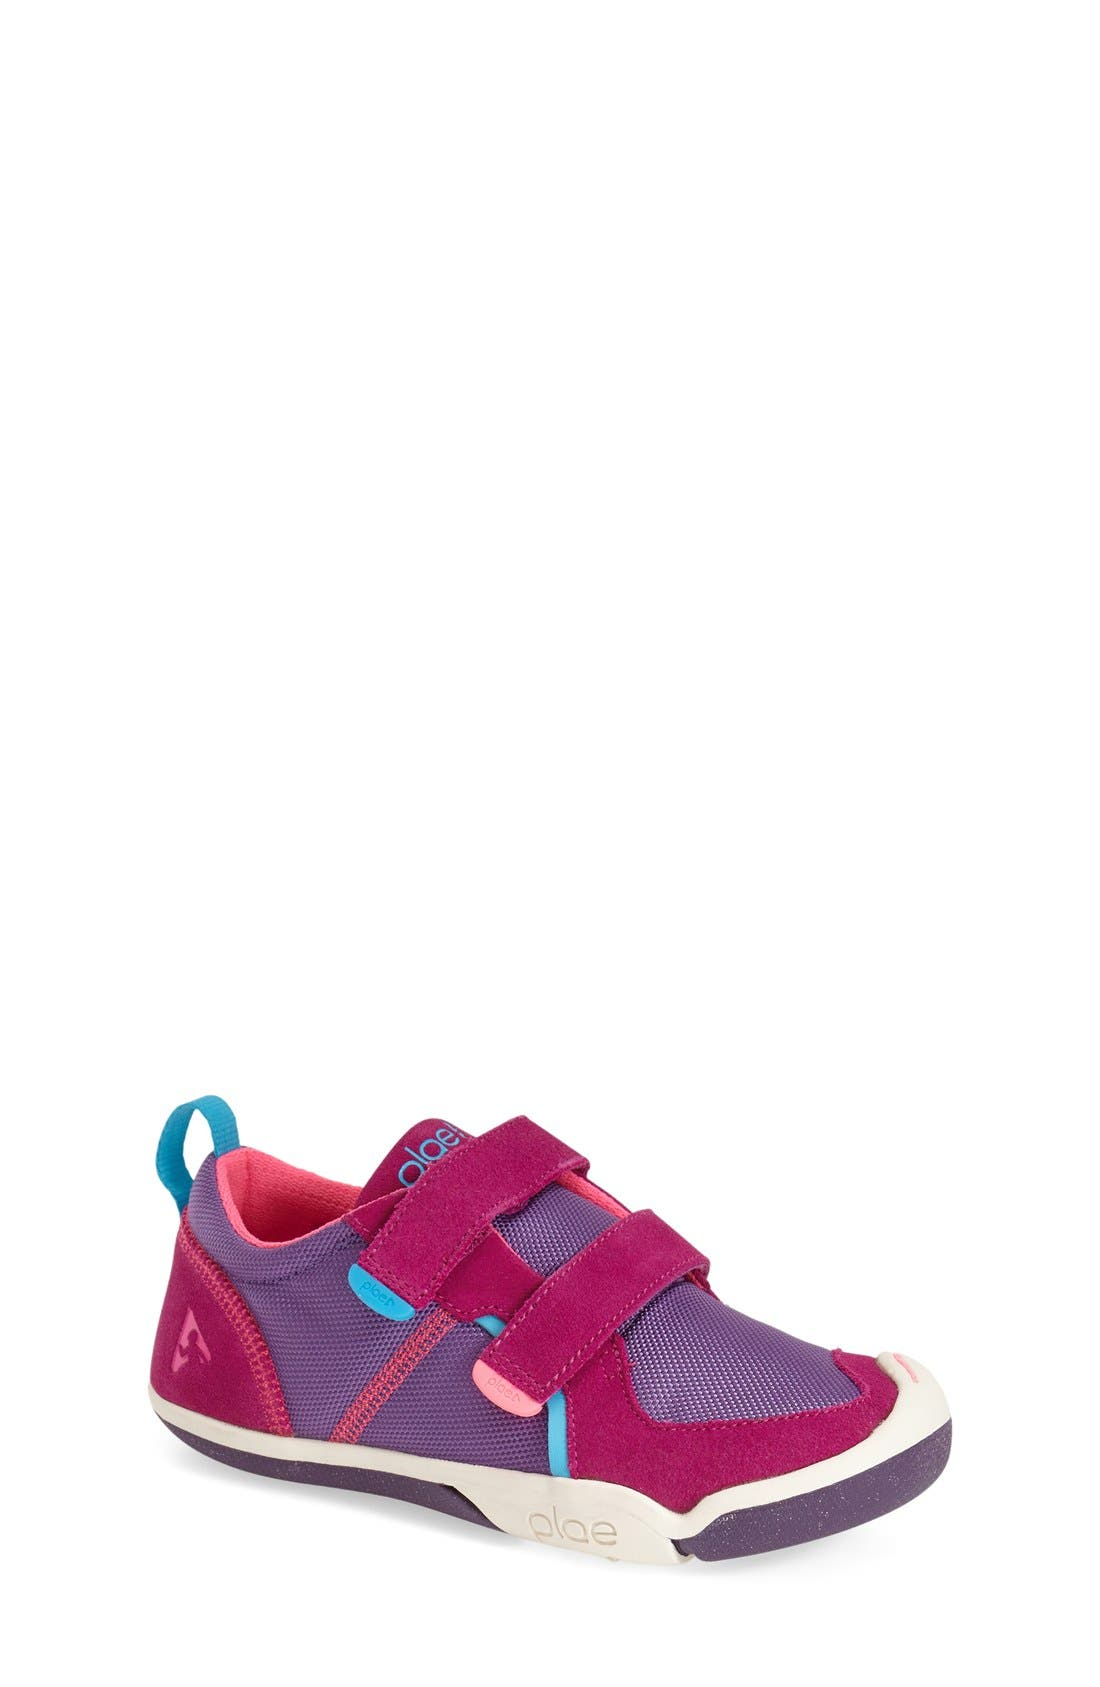 'Ty' Customizable Sneaker,                         Main,                         color, FUCHSIA/ PURPLE